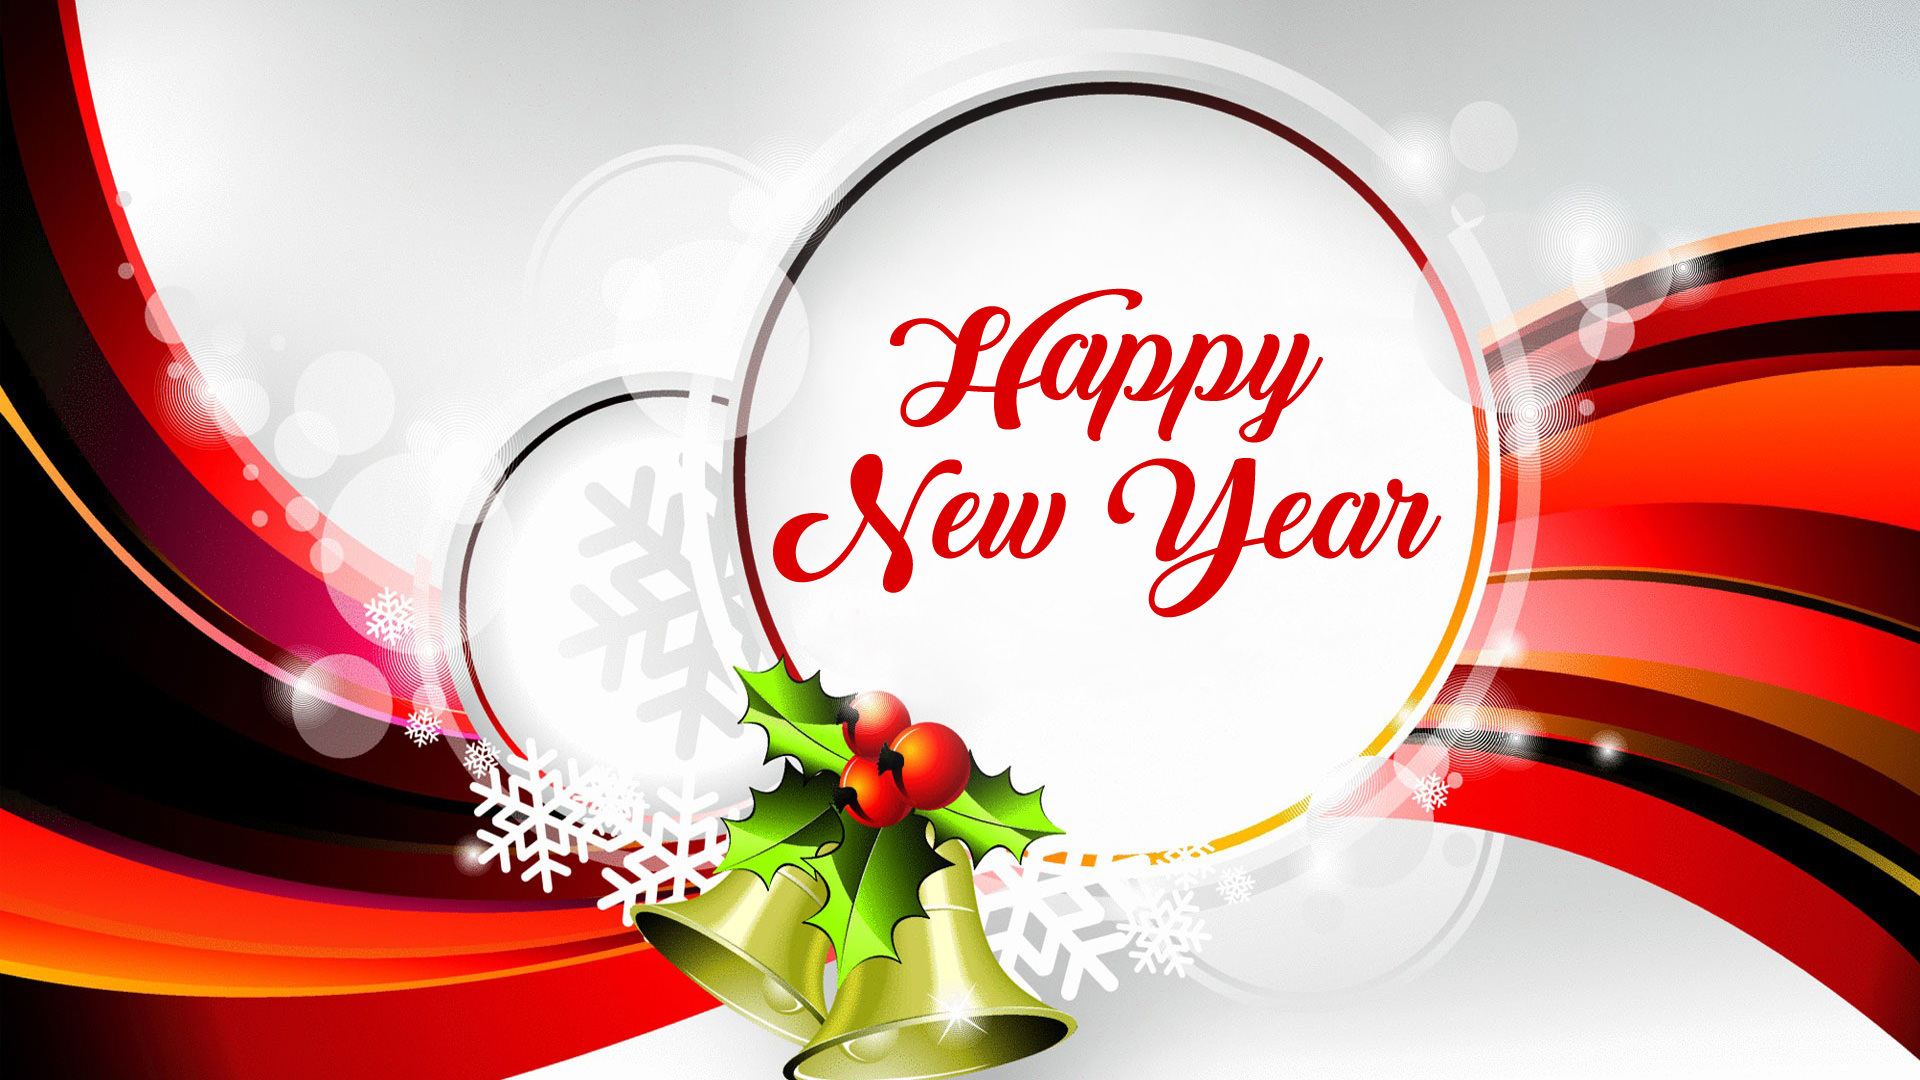 happy new year wallpaper latest special happy new year 2018 wallpaper hd greetings desktop images